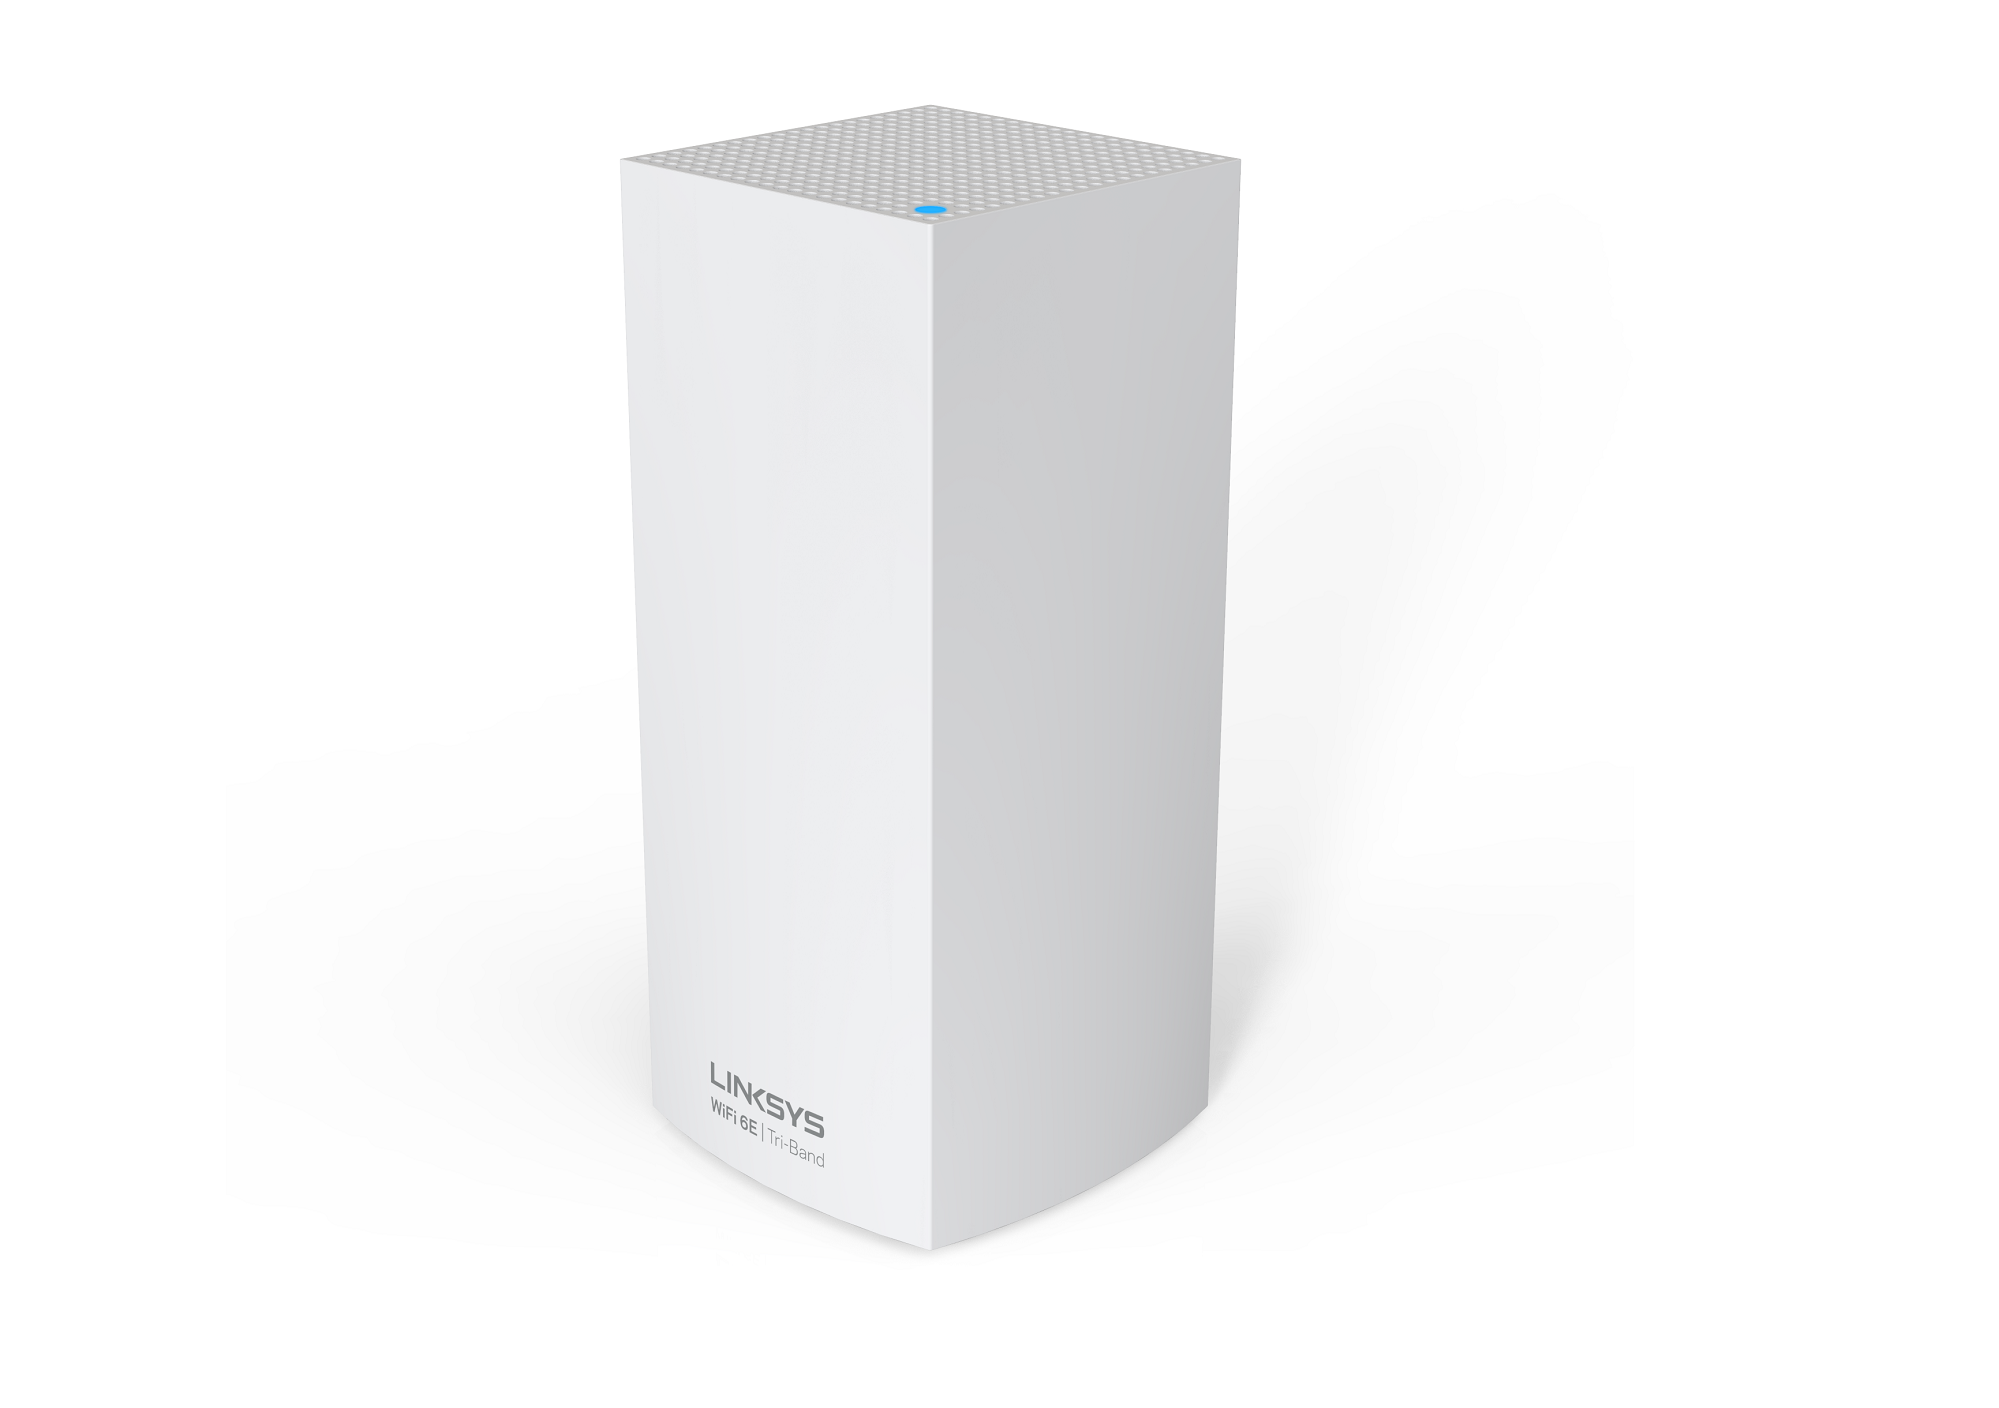 linksys-axe8400-triband-wi-fi-6-router-front-2.png